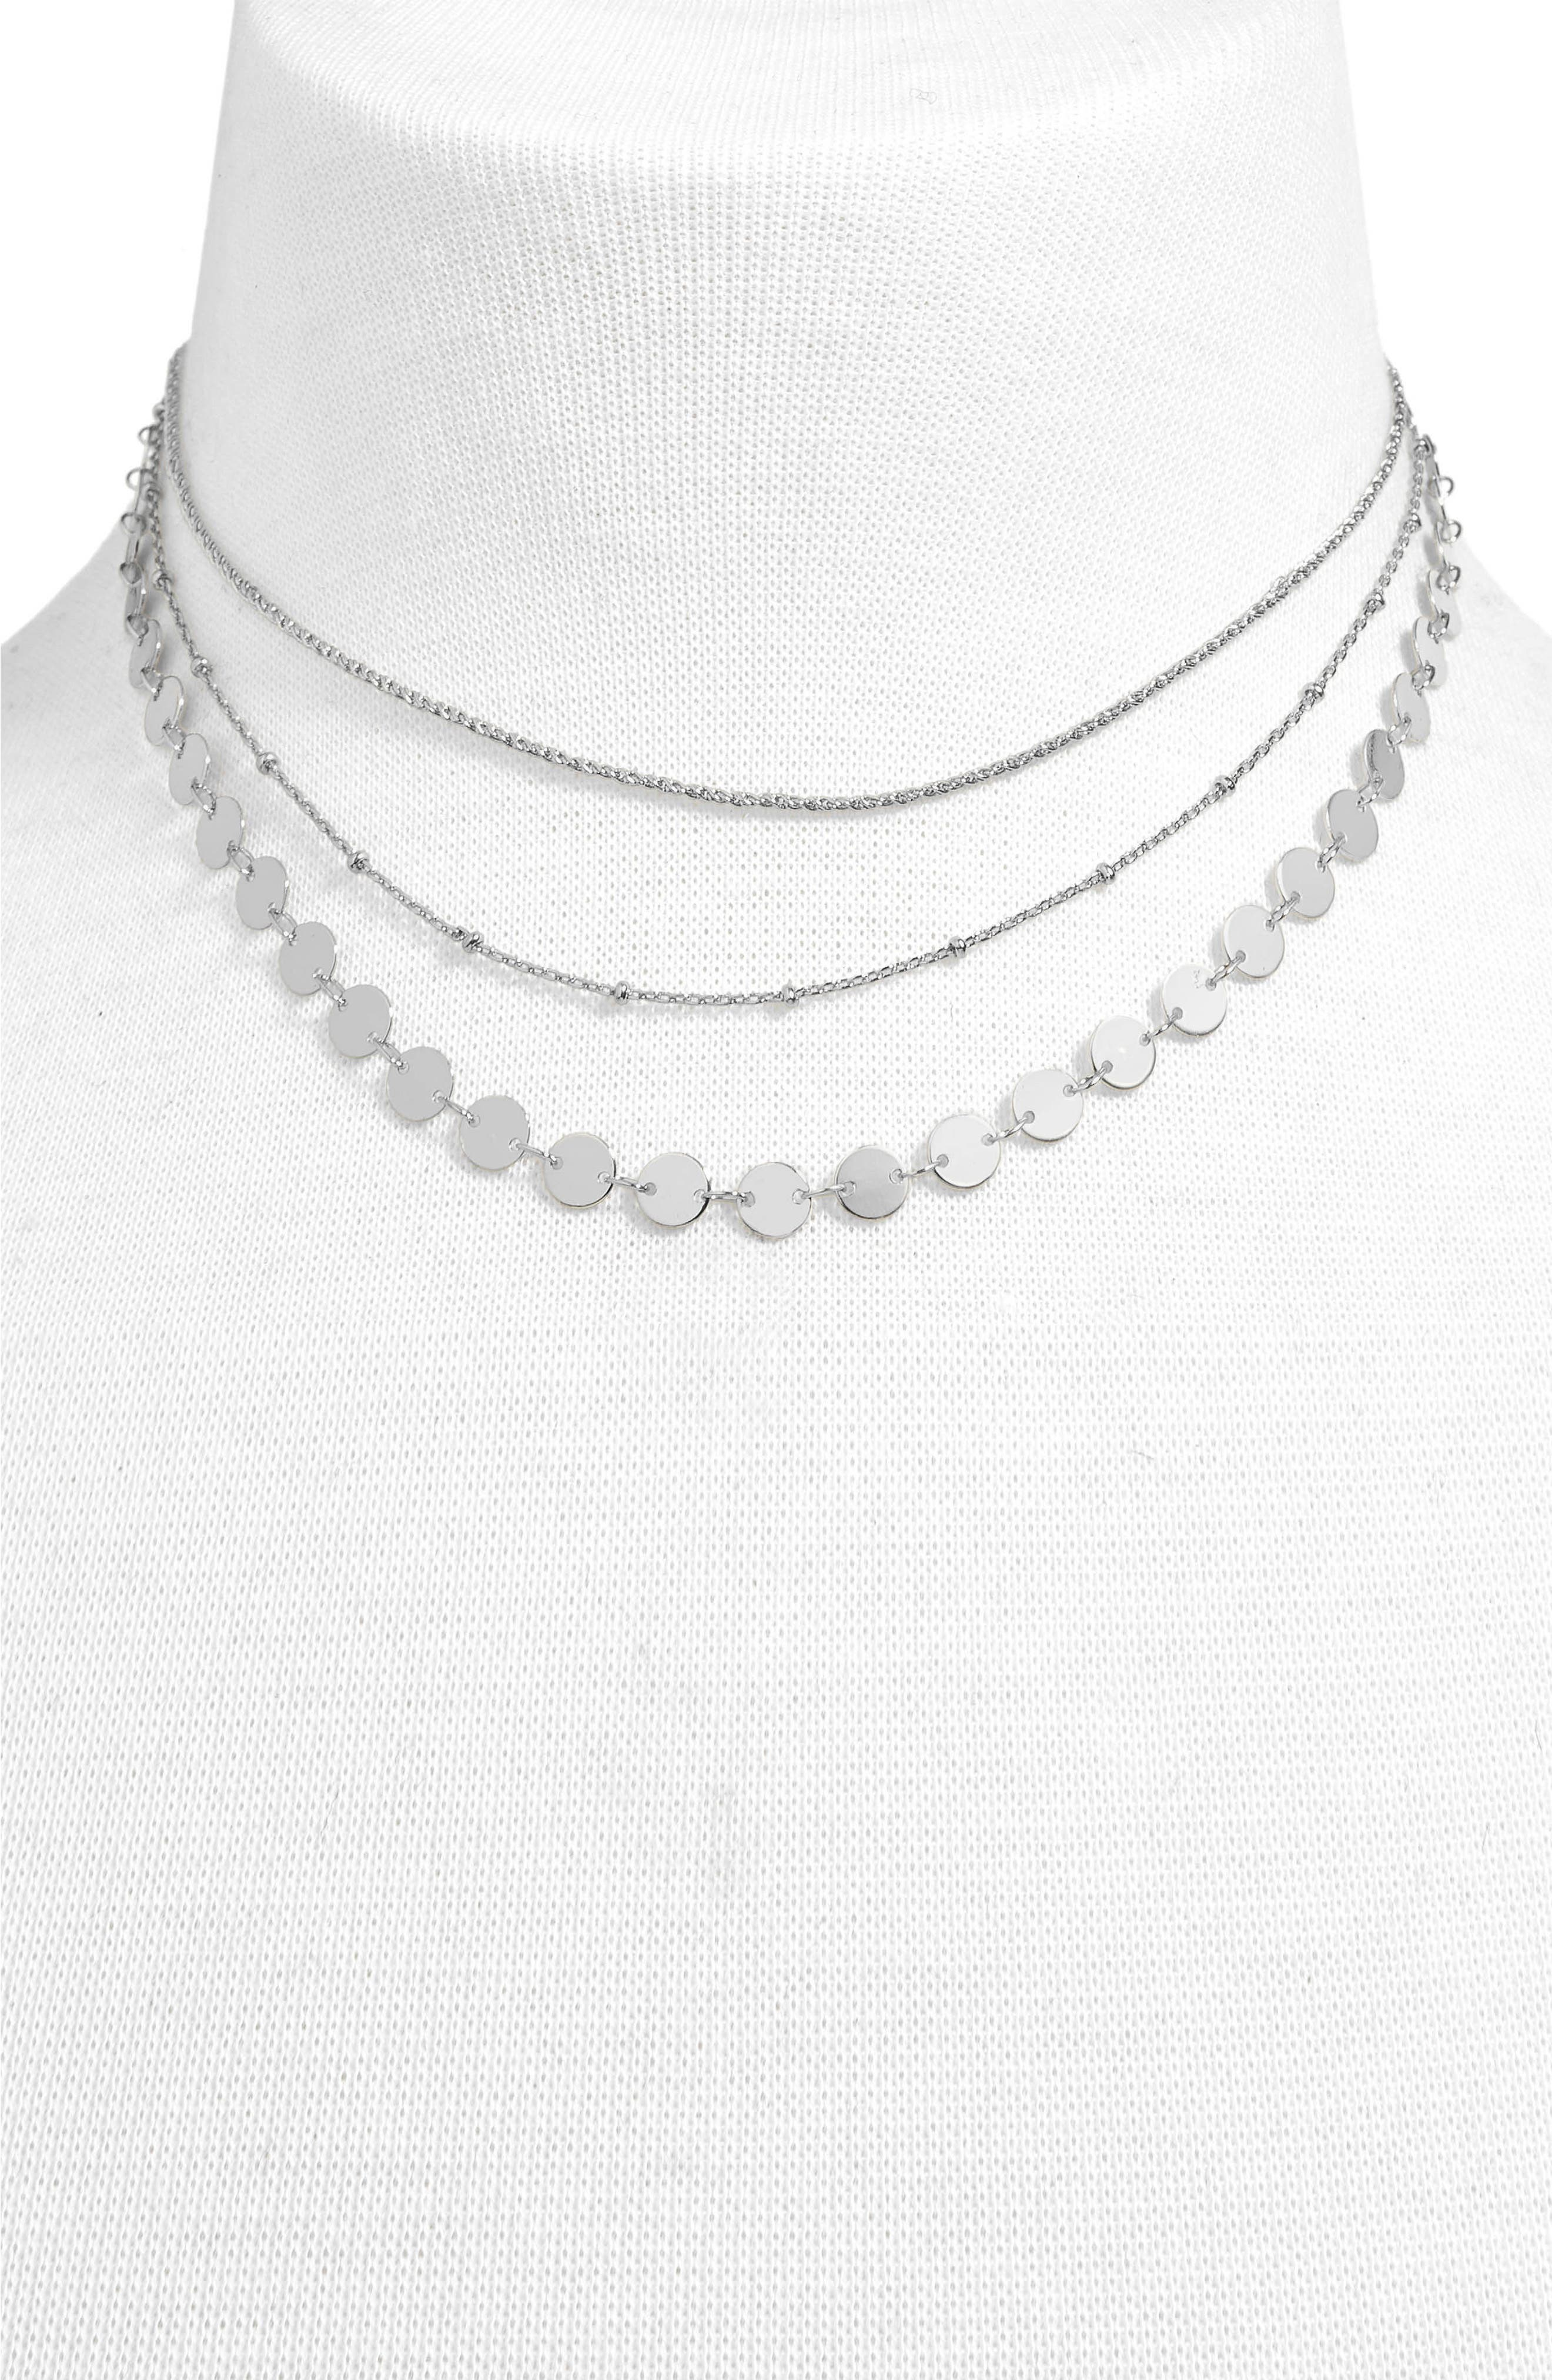 Sophia Layered Collar Necklace,                         Main,                         color, 040